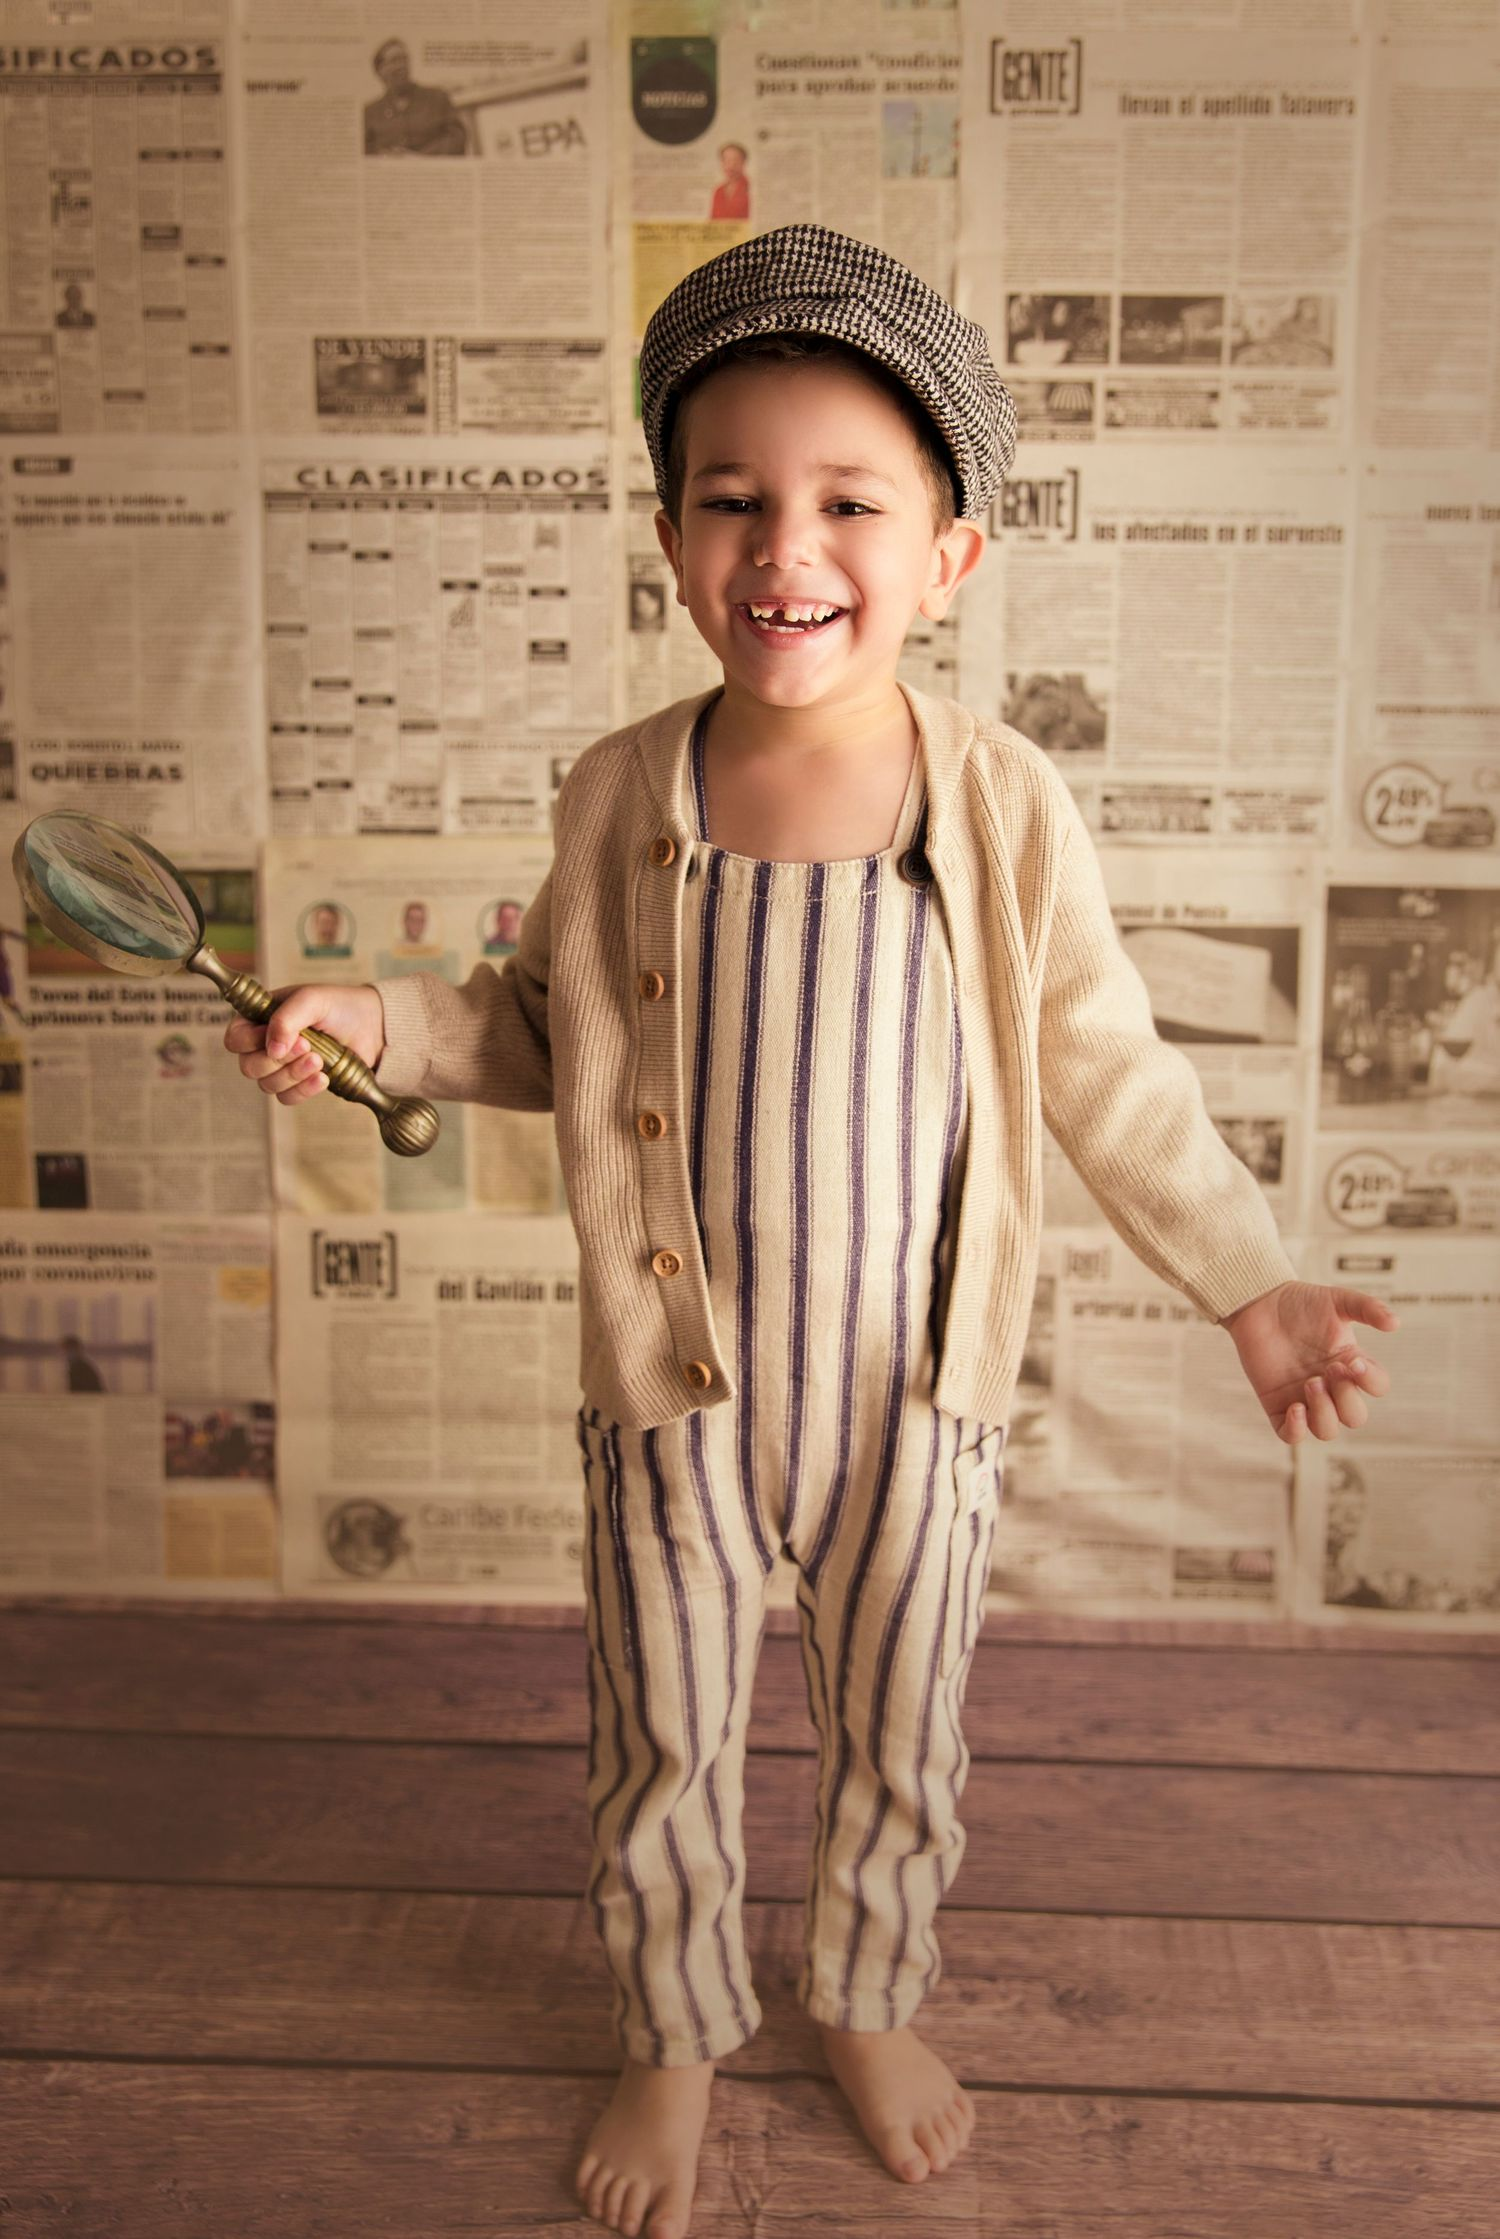 happy 4 year old using overalls newspaper backdrop